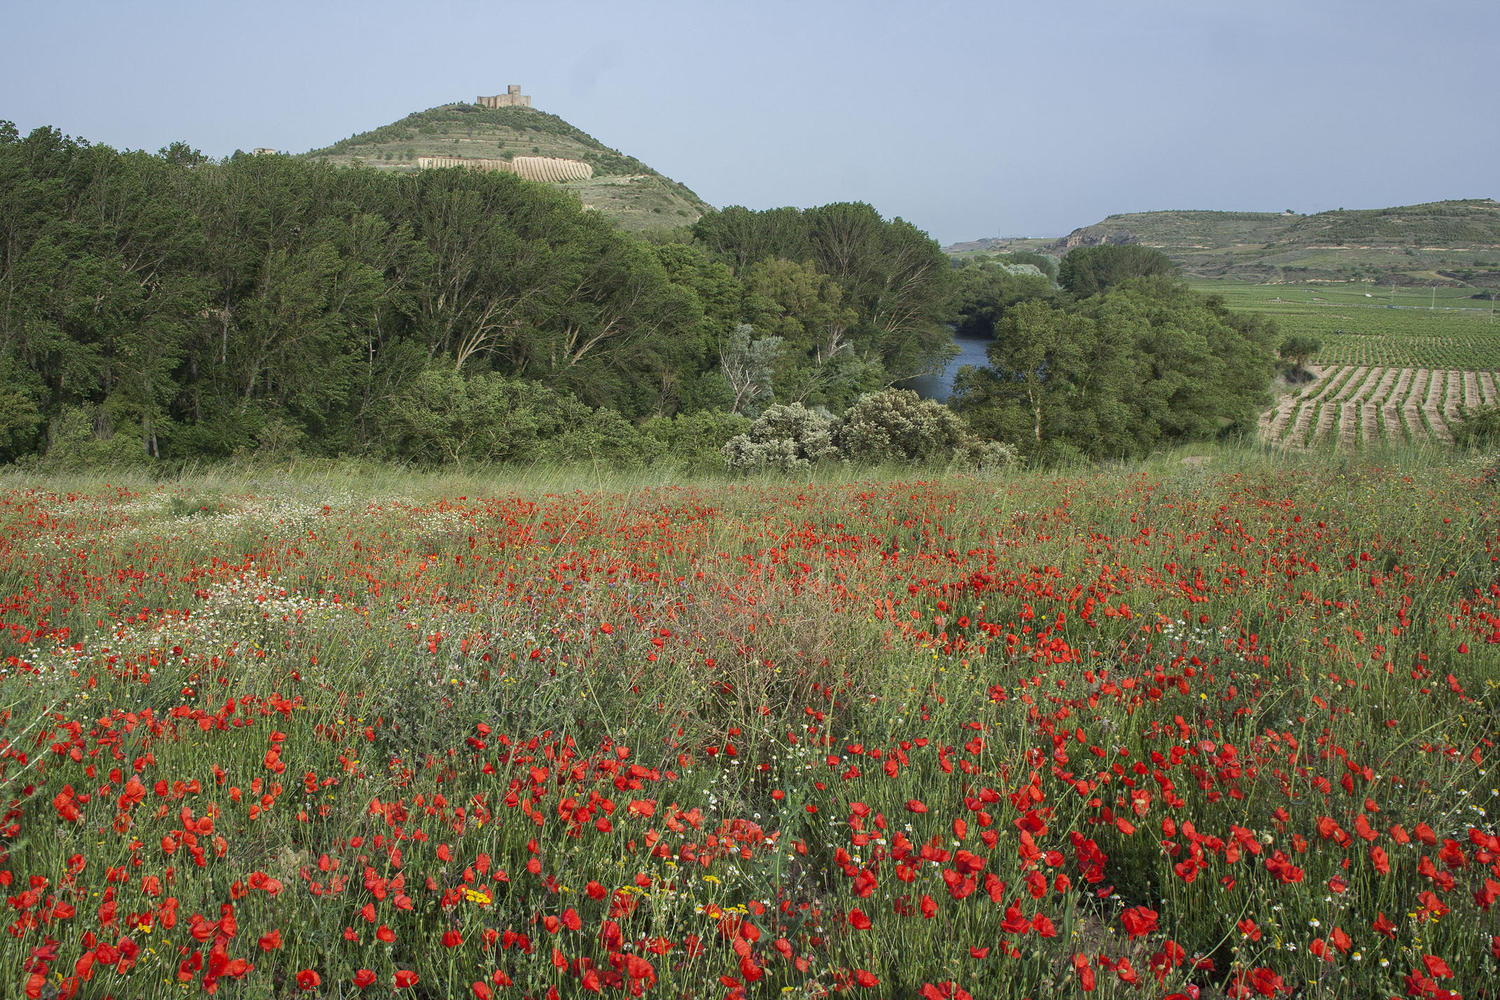 Davalillo castle and poppies